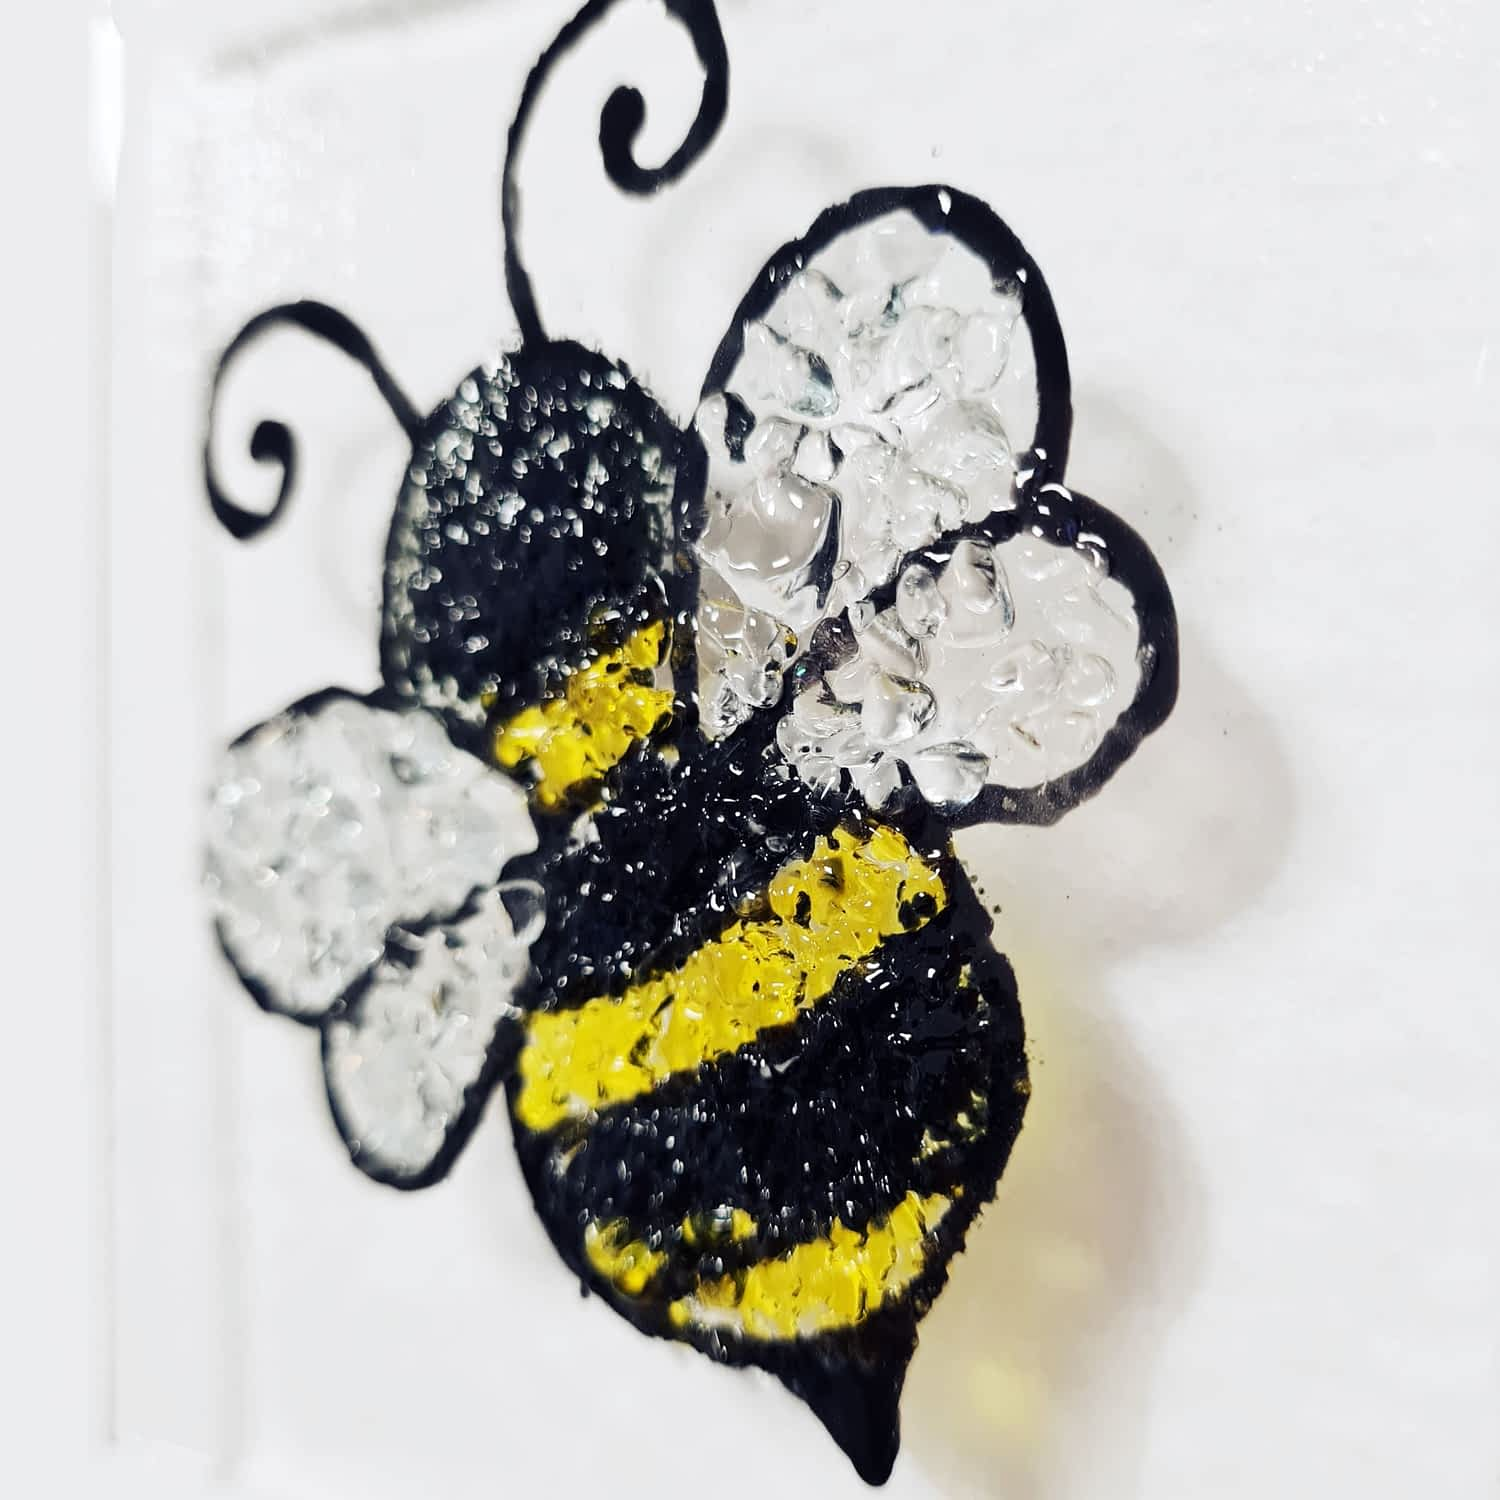 A wonderful suncatcher image of a bee made out of black, yellow and clear glass.